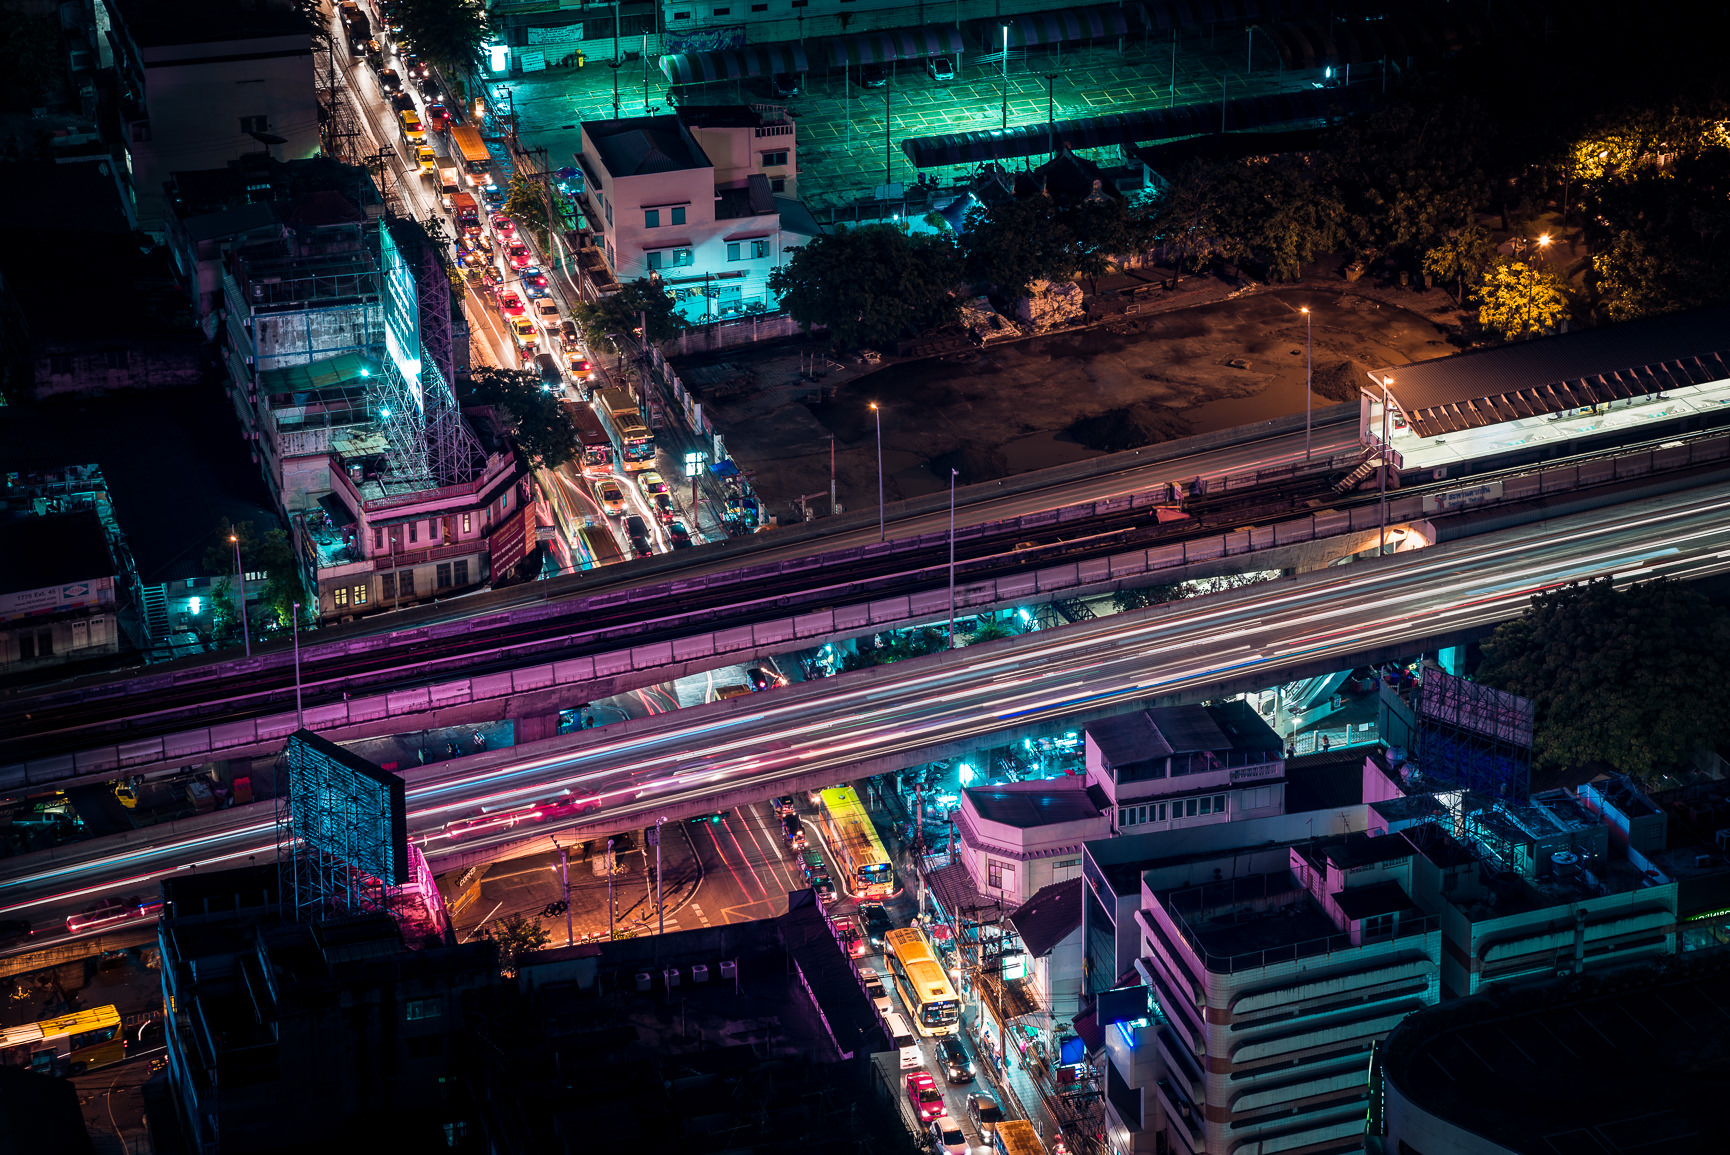 City lights and busy traffic